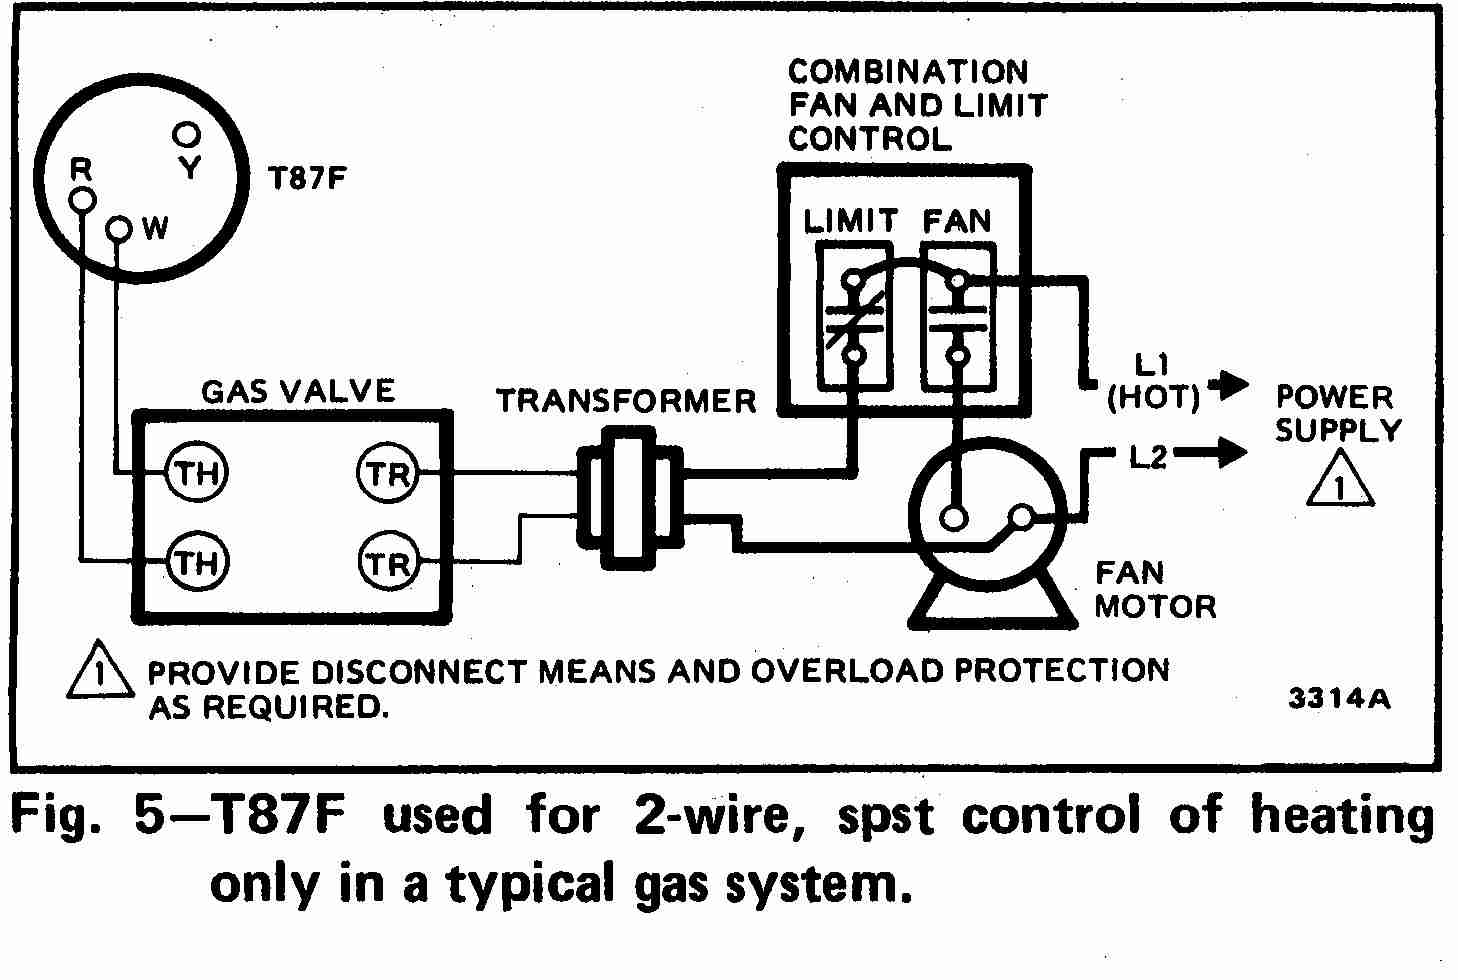 TT_T87F_0002_2Wg_DJF room thermostat wiring diagrams for hvac systems Basic Electrical Wiring Diagrams at bayanpartner.co